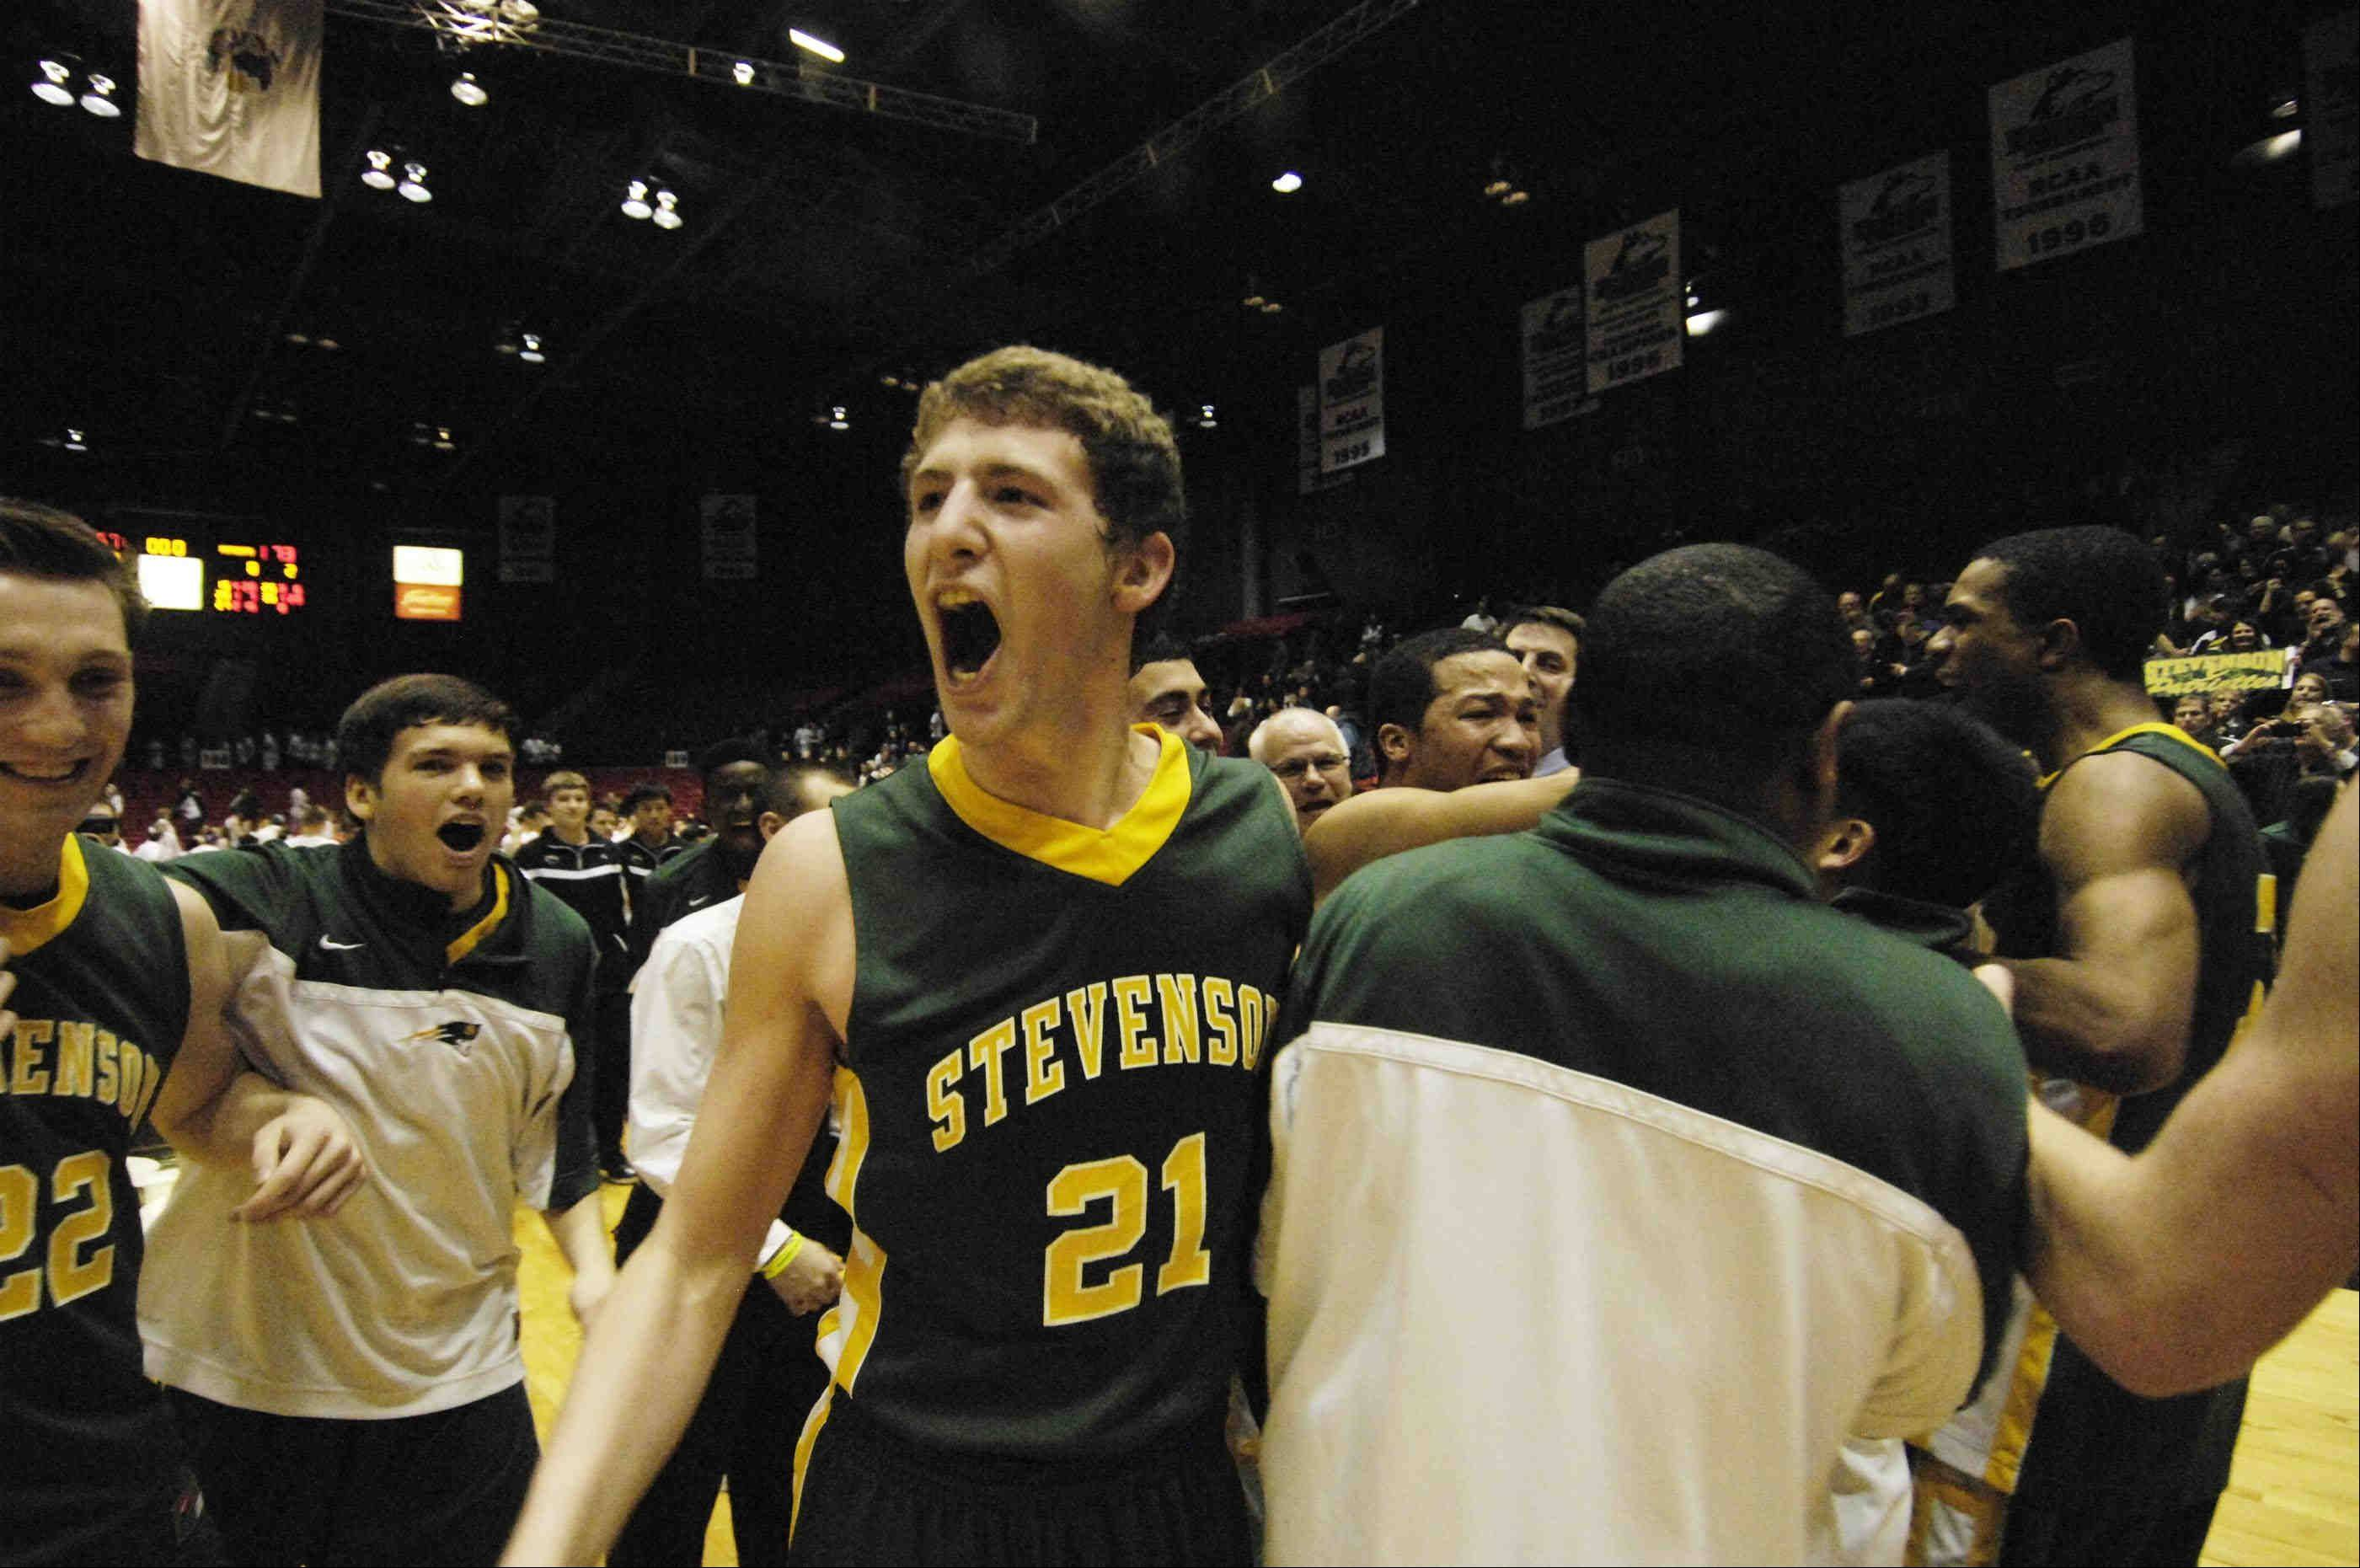 Stevenson's Andy Stempel turns toward the crowd after the Patriots defeated Rockford Boylan on Tuesday in the Class 4A NIU supersectional in DeKalb.